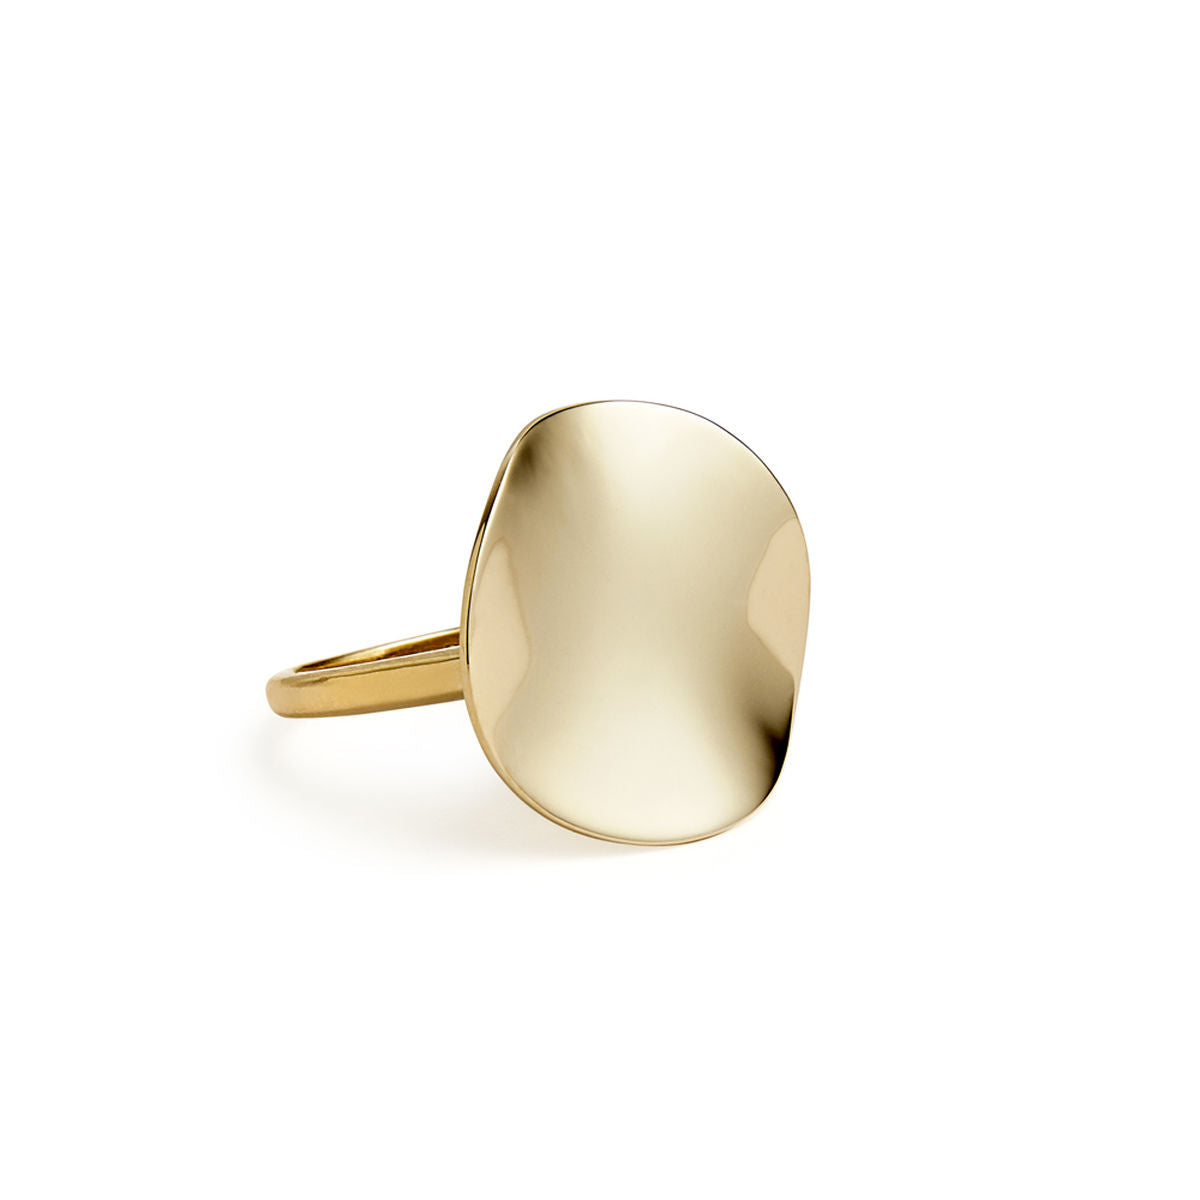 IPPOLITA Classico 18K Yellow Gold Wavy Disc Ring